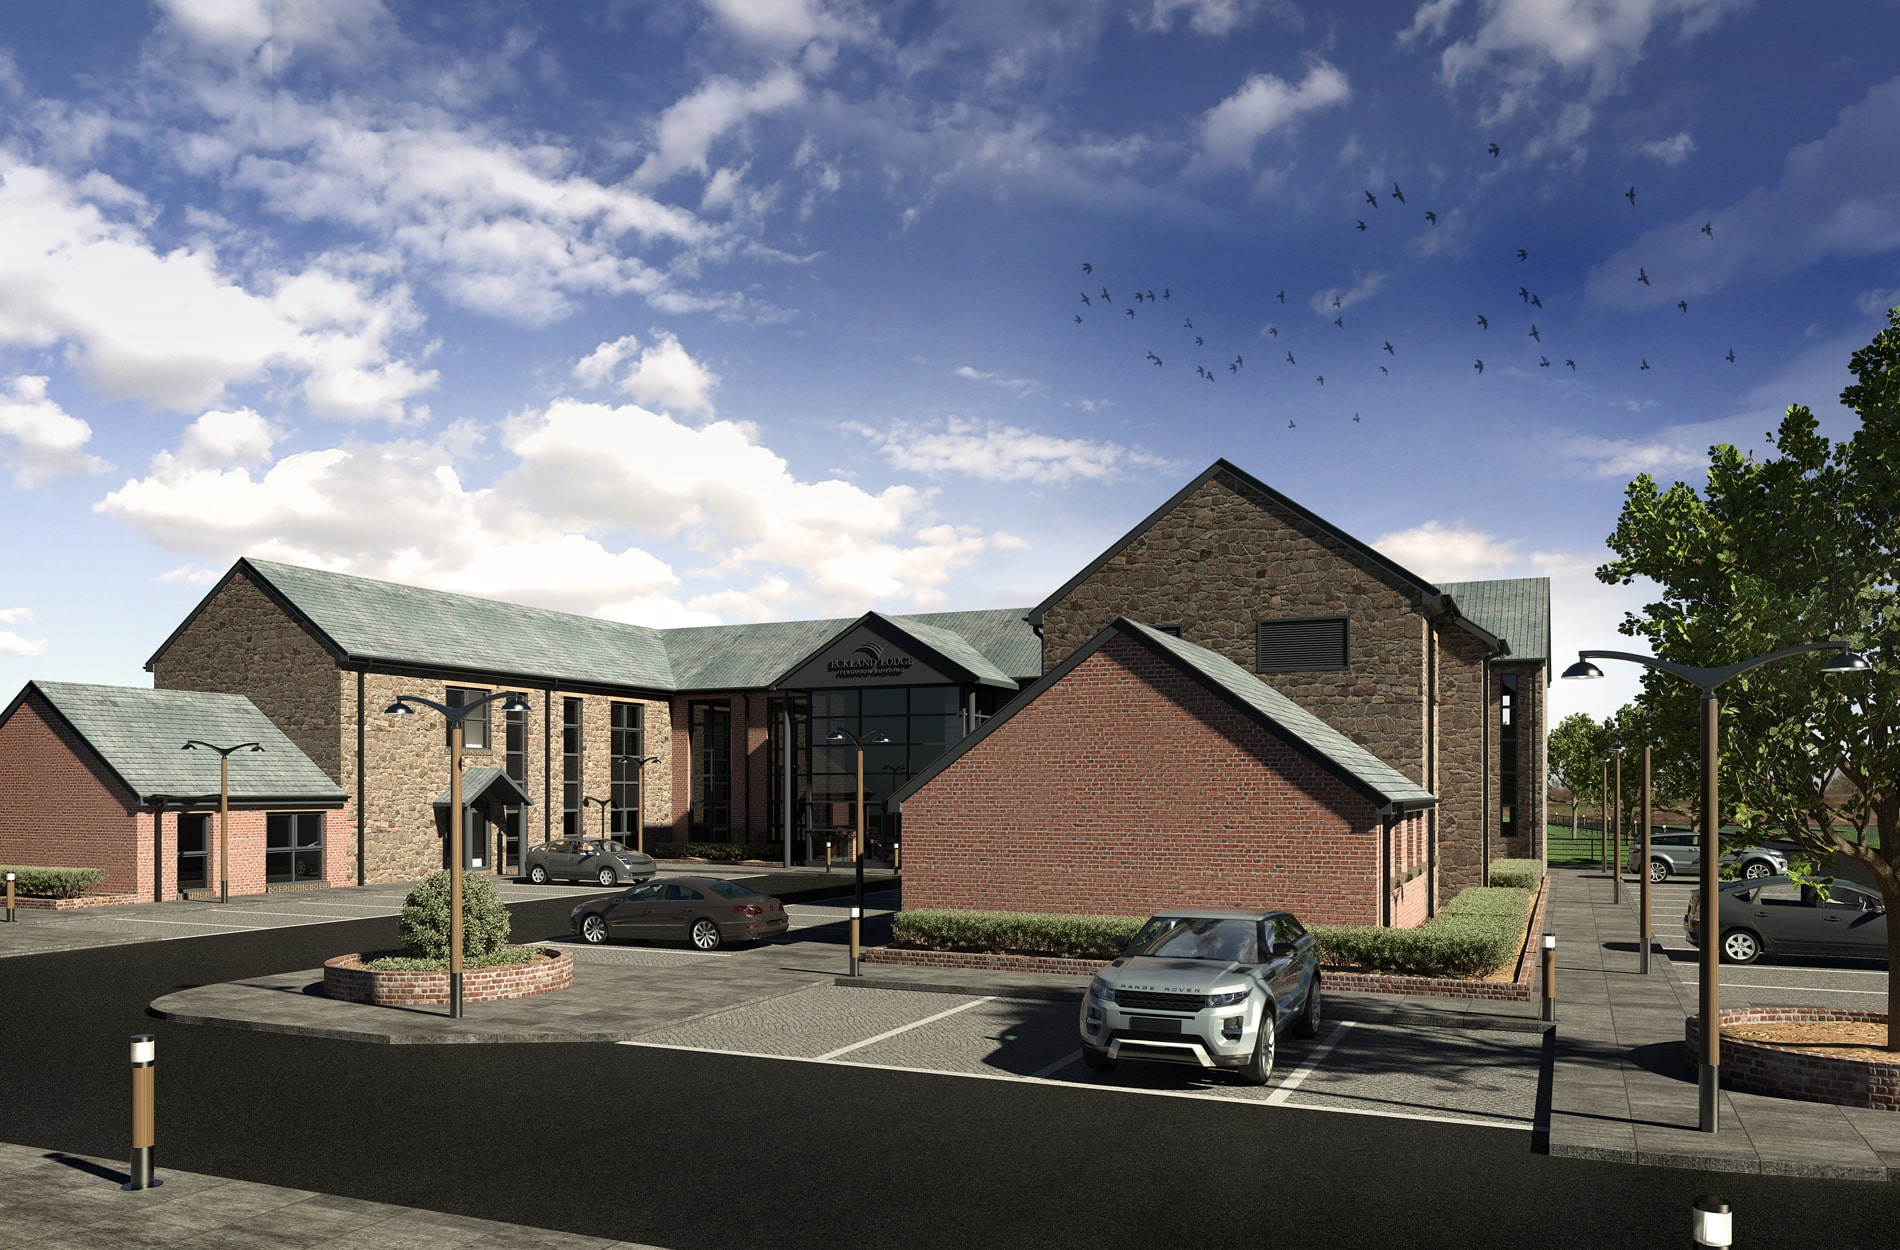 Day time architectural 3D rendering for Eckland Lodge Business Park